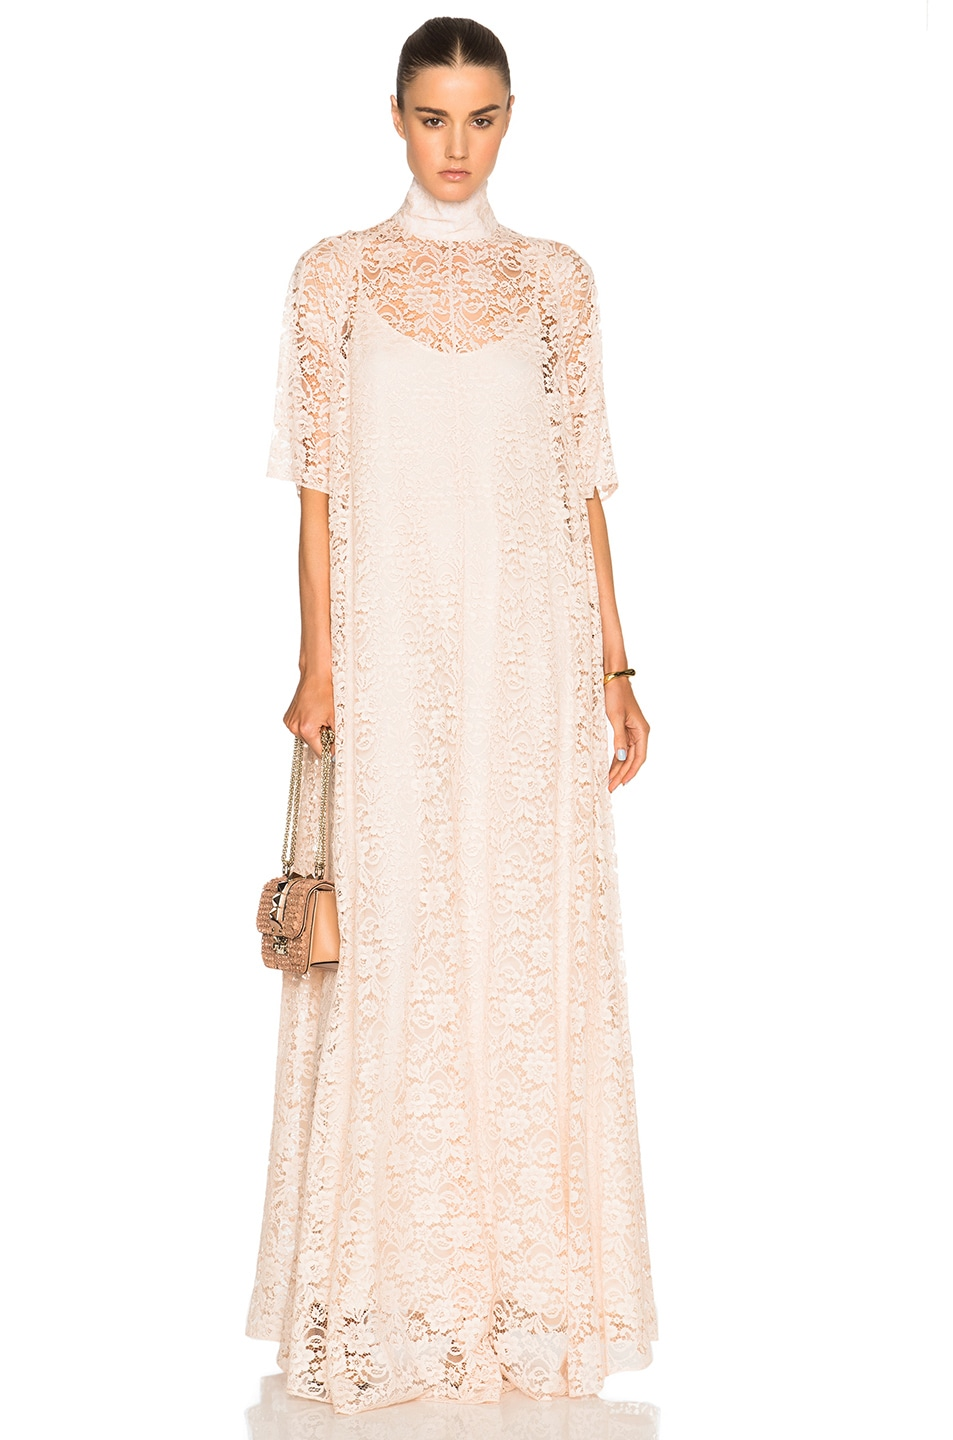 Ryan Roche French Lace Dress in Neutrals,Pink